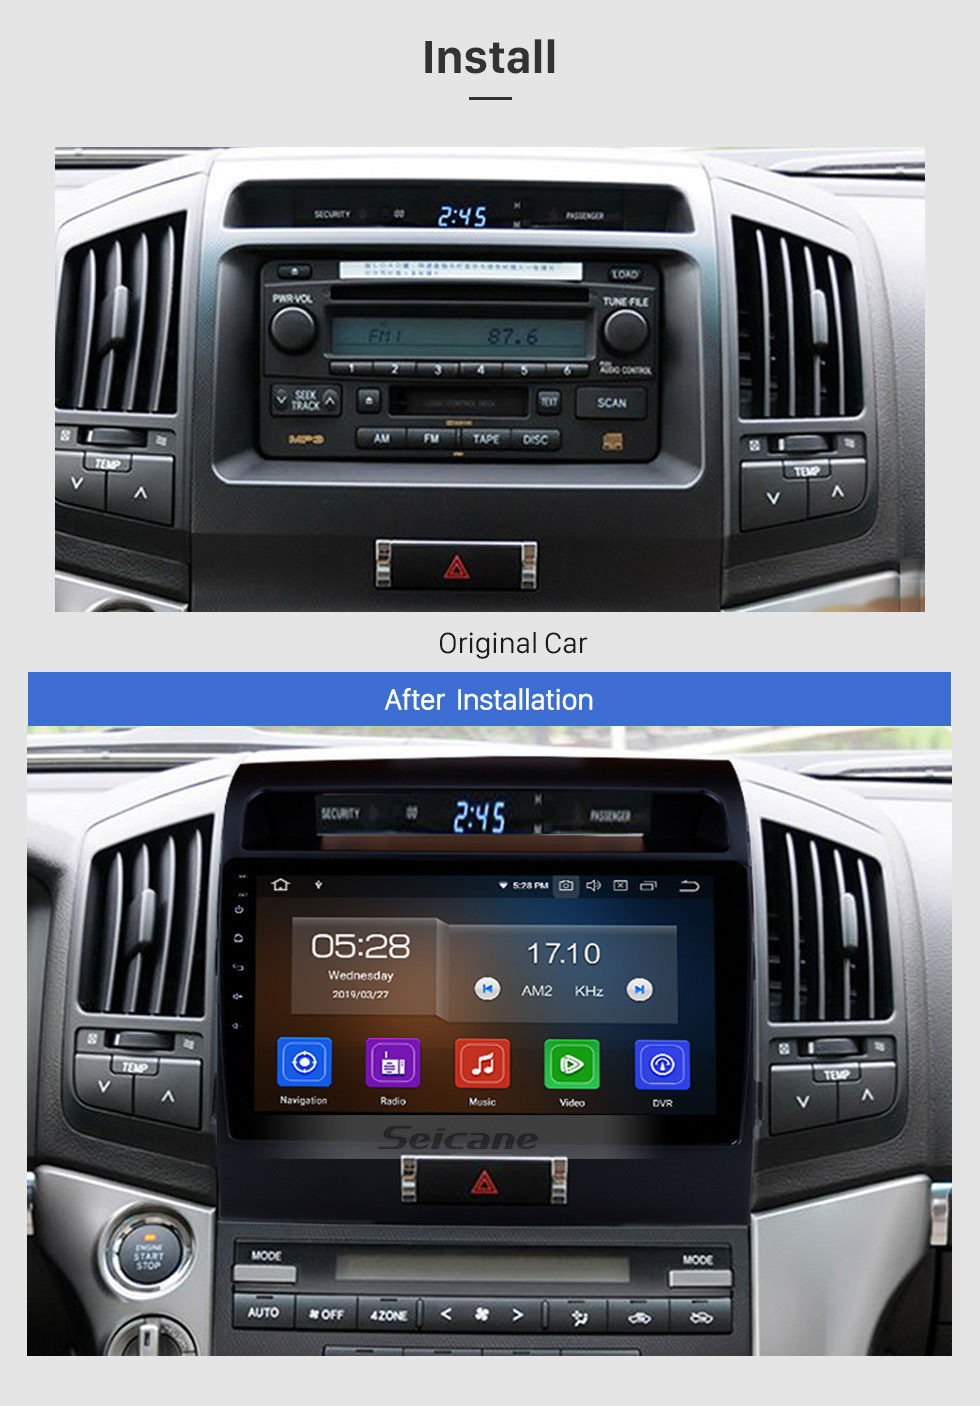 Seicane OEM 10.1 inch HD TouchScreen GPS Navigation System Android 10.0 for 2007-2017 TOYOTA LAND CRUISER Radio Support Car Stereo Bluetooth Music Mirror Link OBD2 3G/4G WiFi Video Backup Camera